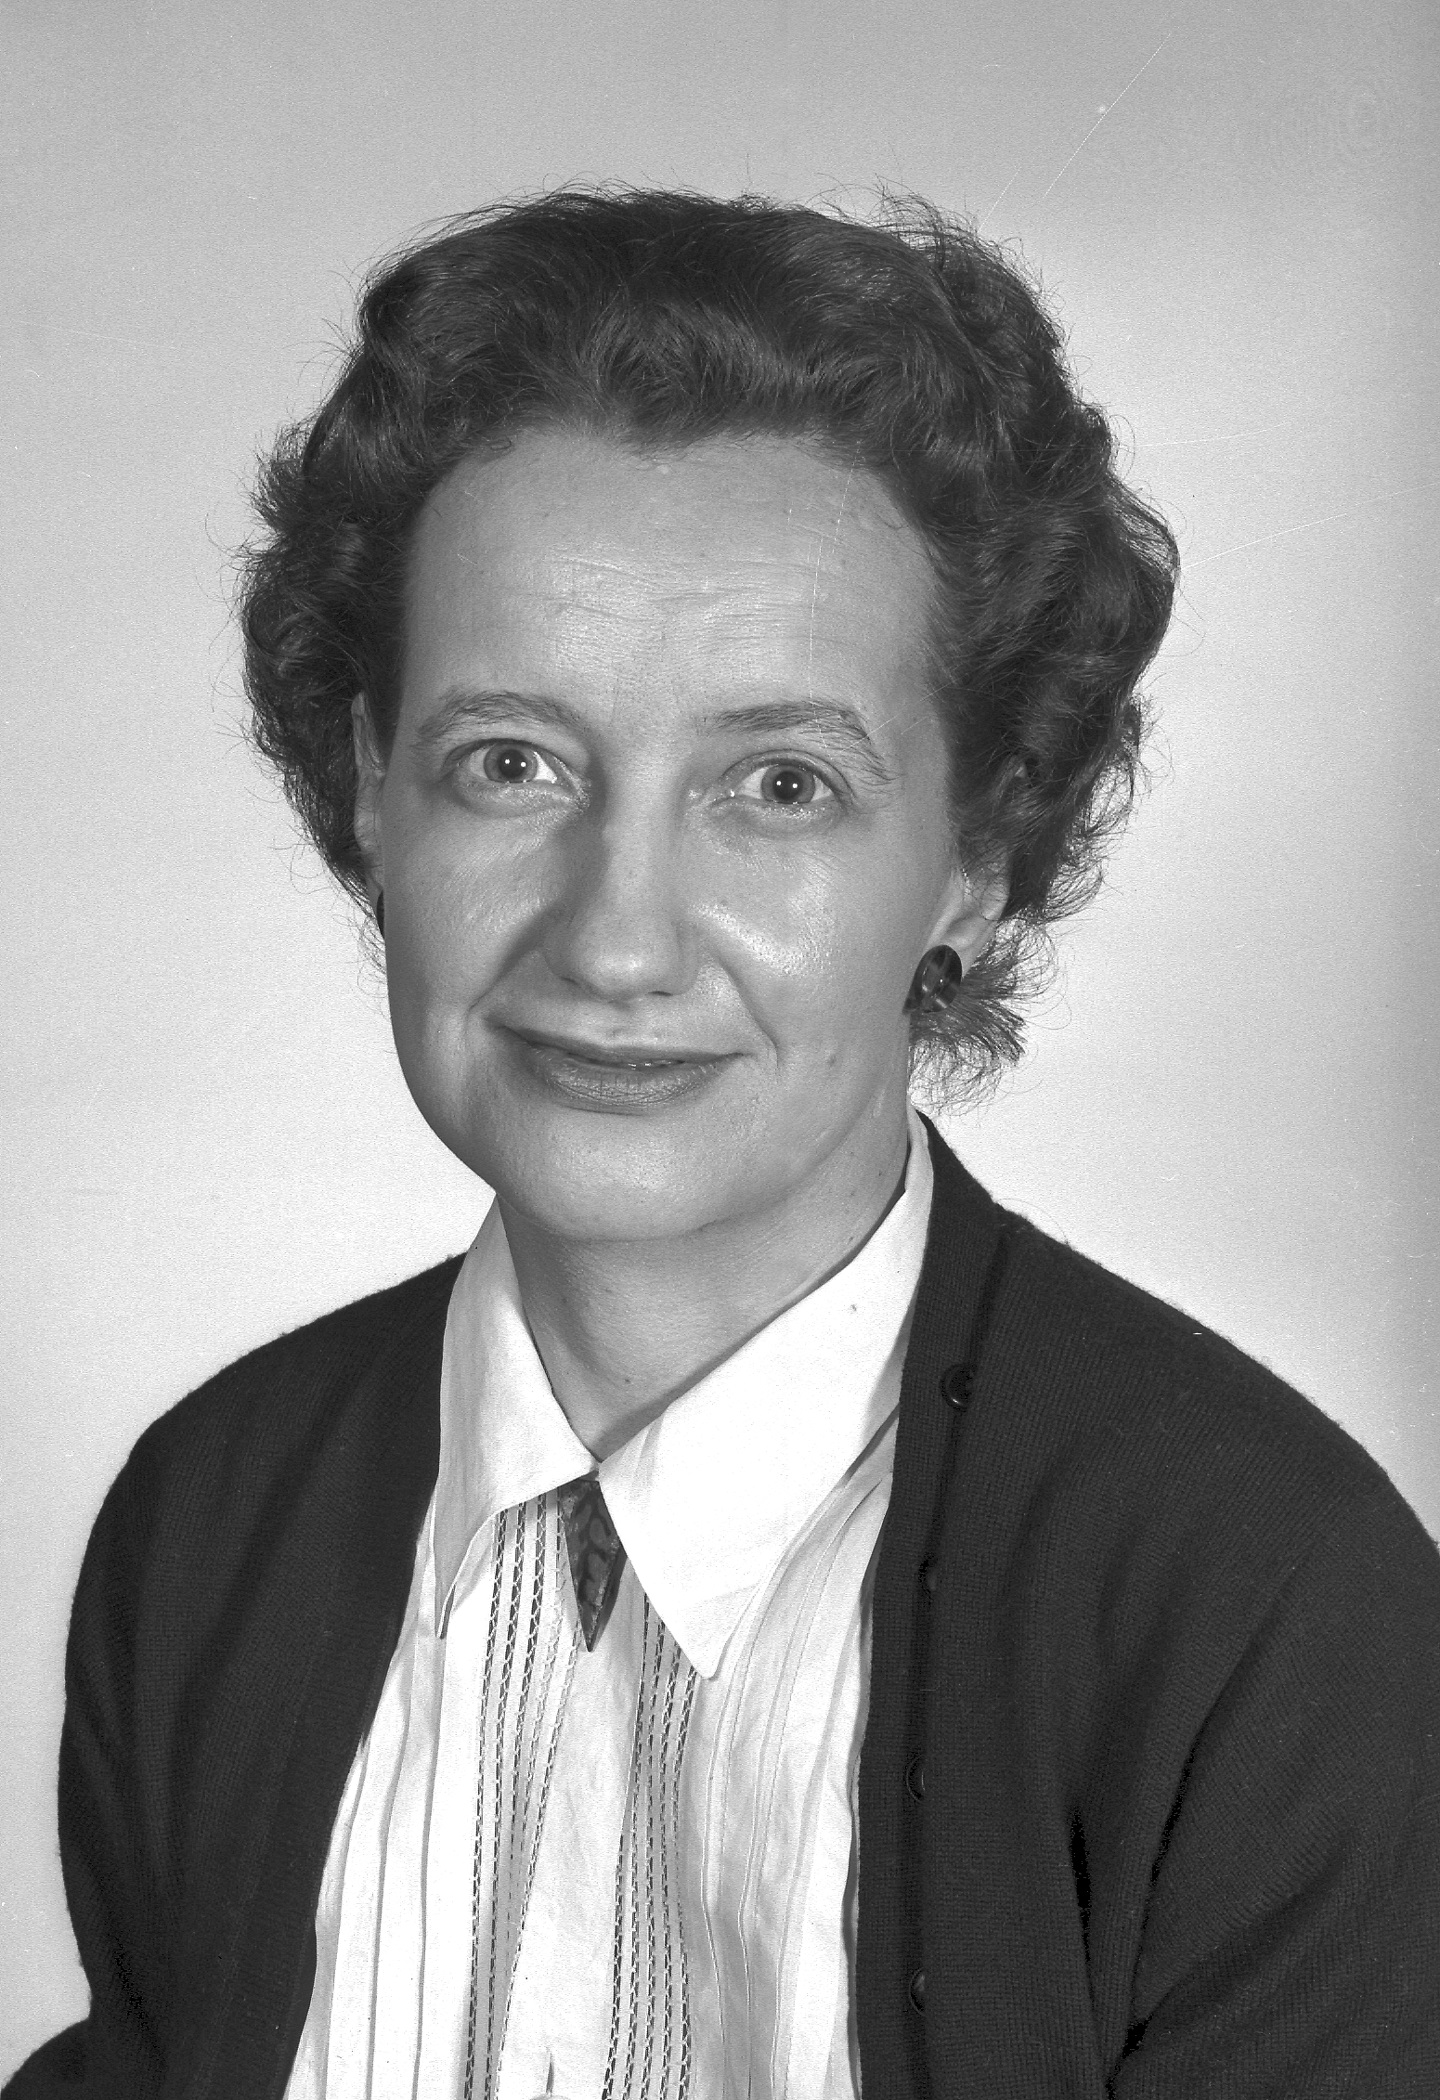 Photo of Brenda Milner in 1956